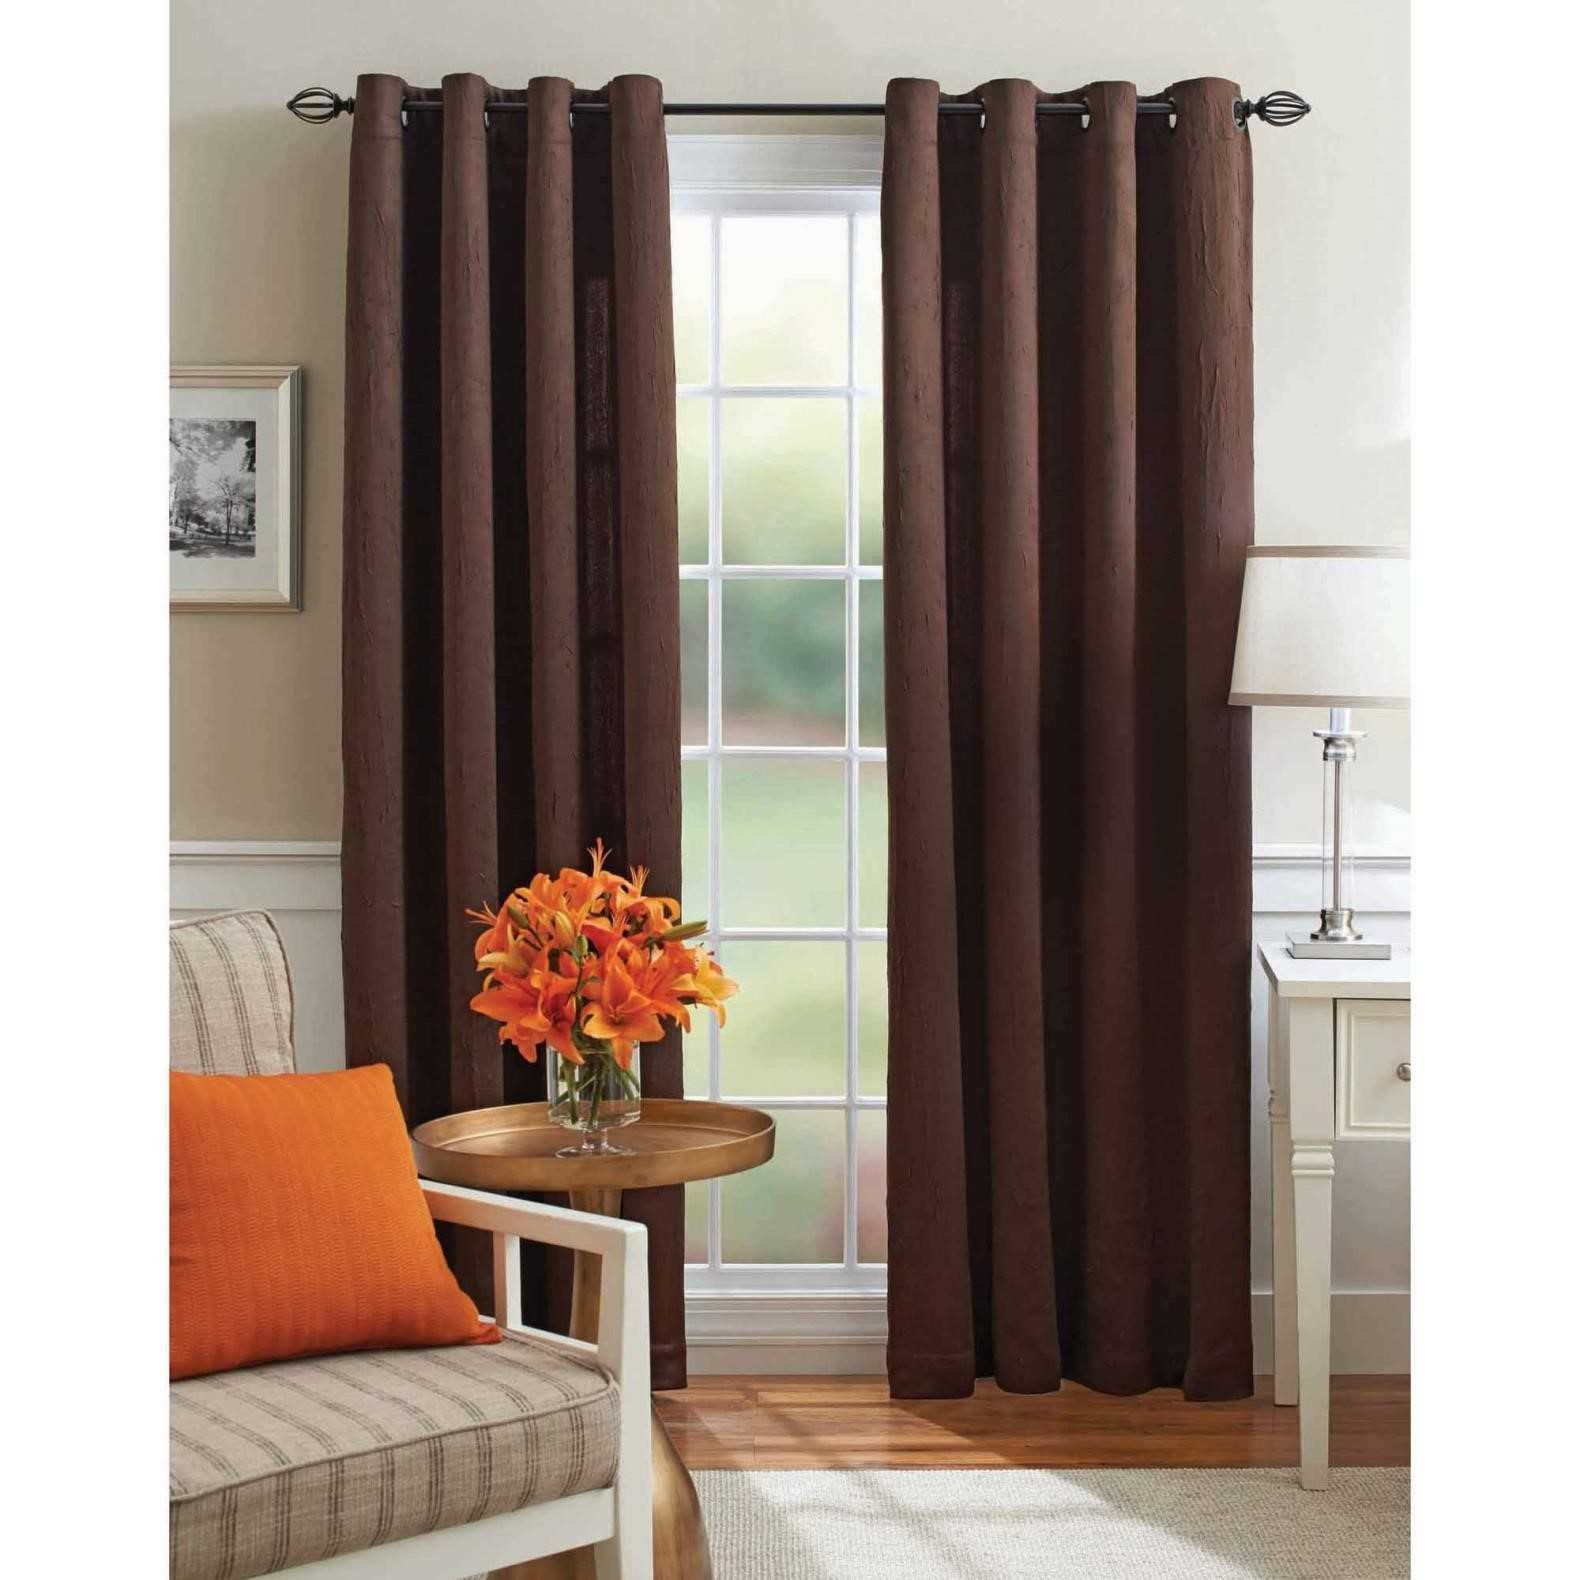 Colorful Curtains Furniture Free Image Black And Yes Go Black Pertaining To Black And Brown Curtains (Image 6 of 15)